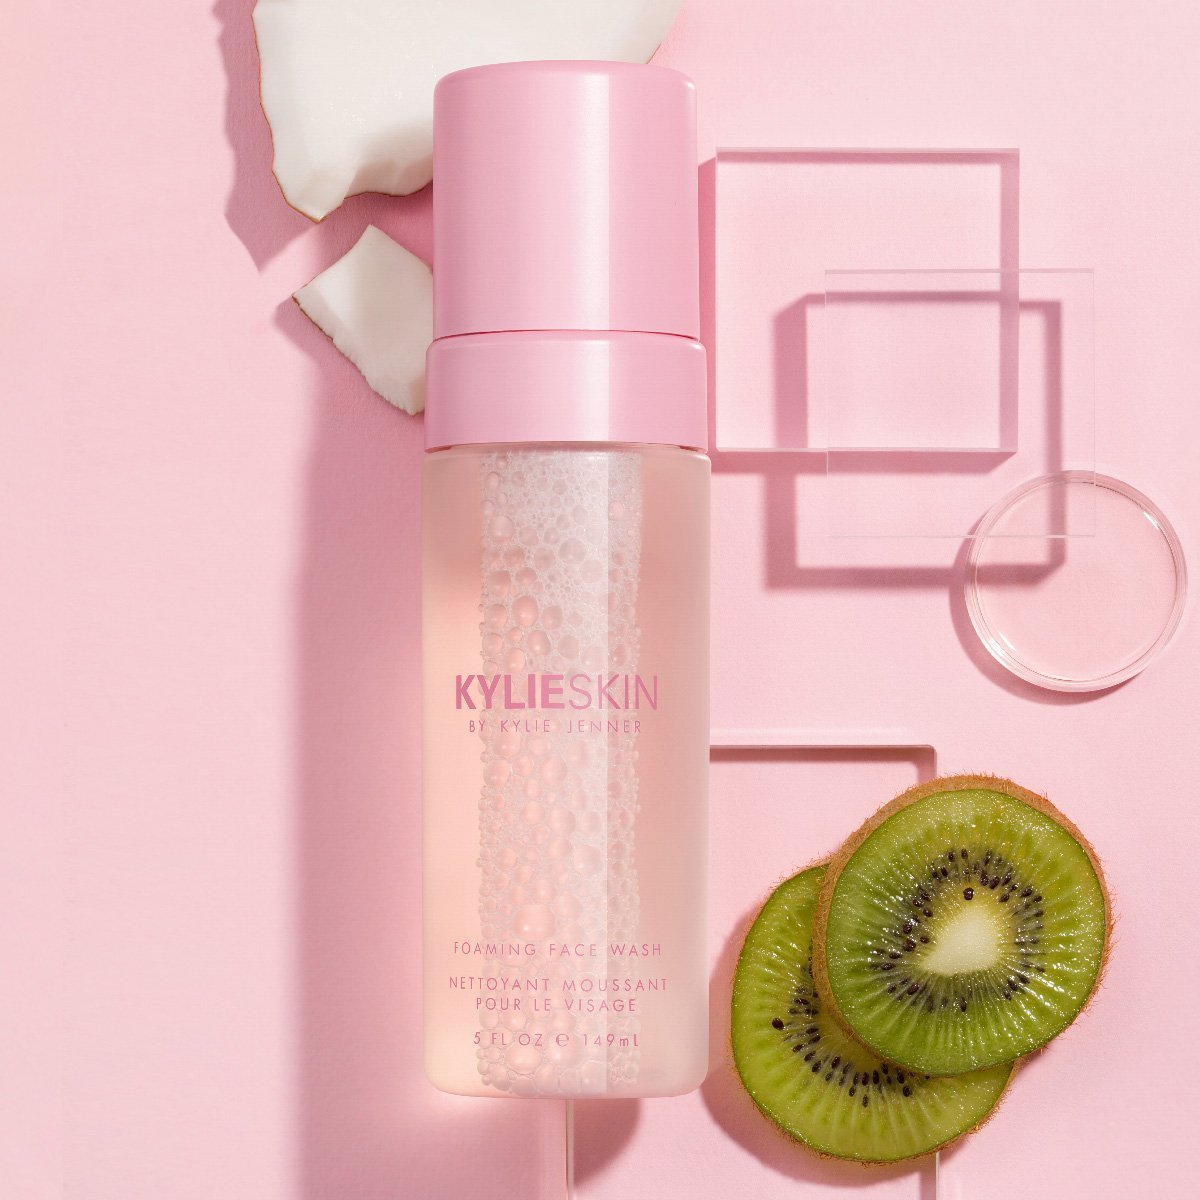 Kylie Skin Foaming Face Wash with Kiwi Ingredient